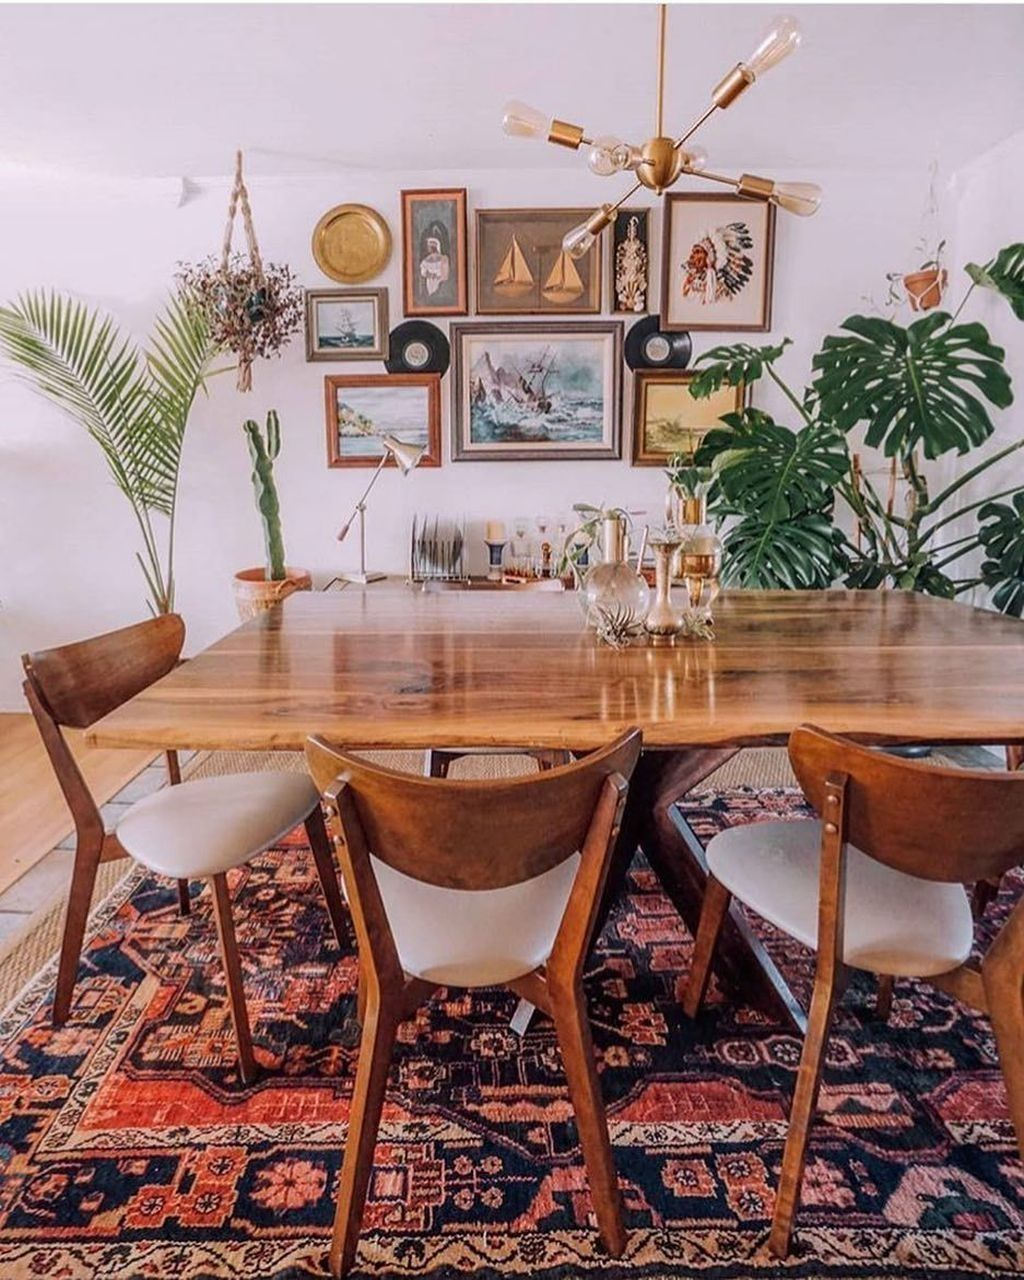 20 unordinary dining room design ideas with bohemian style with images dining room table on boho chic kitchen table decor id=85091